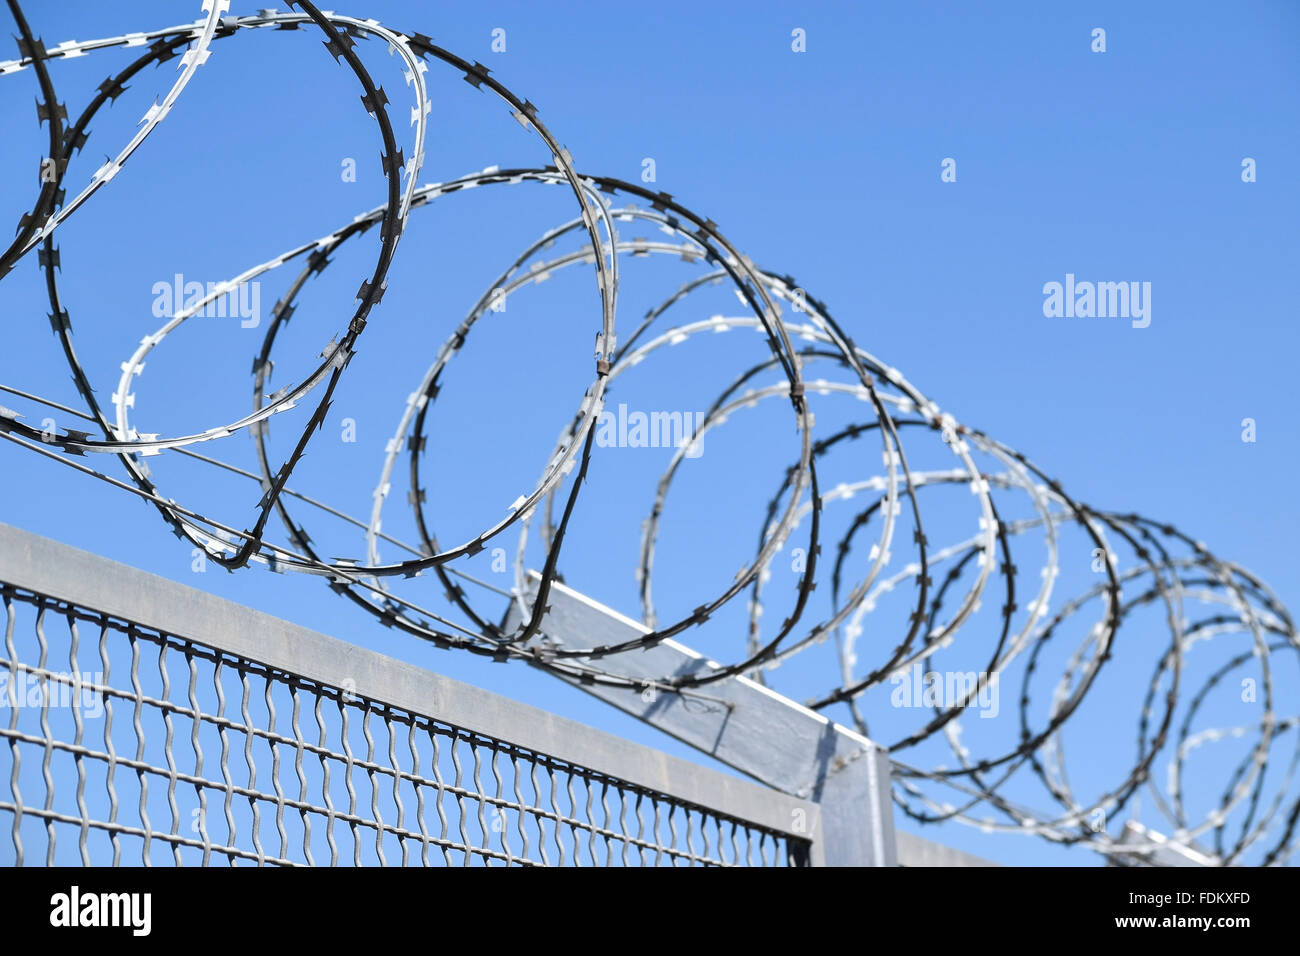 Barbed Wire Fence Side Angle Stock Photos & Barbed Wire Fence Side ...